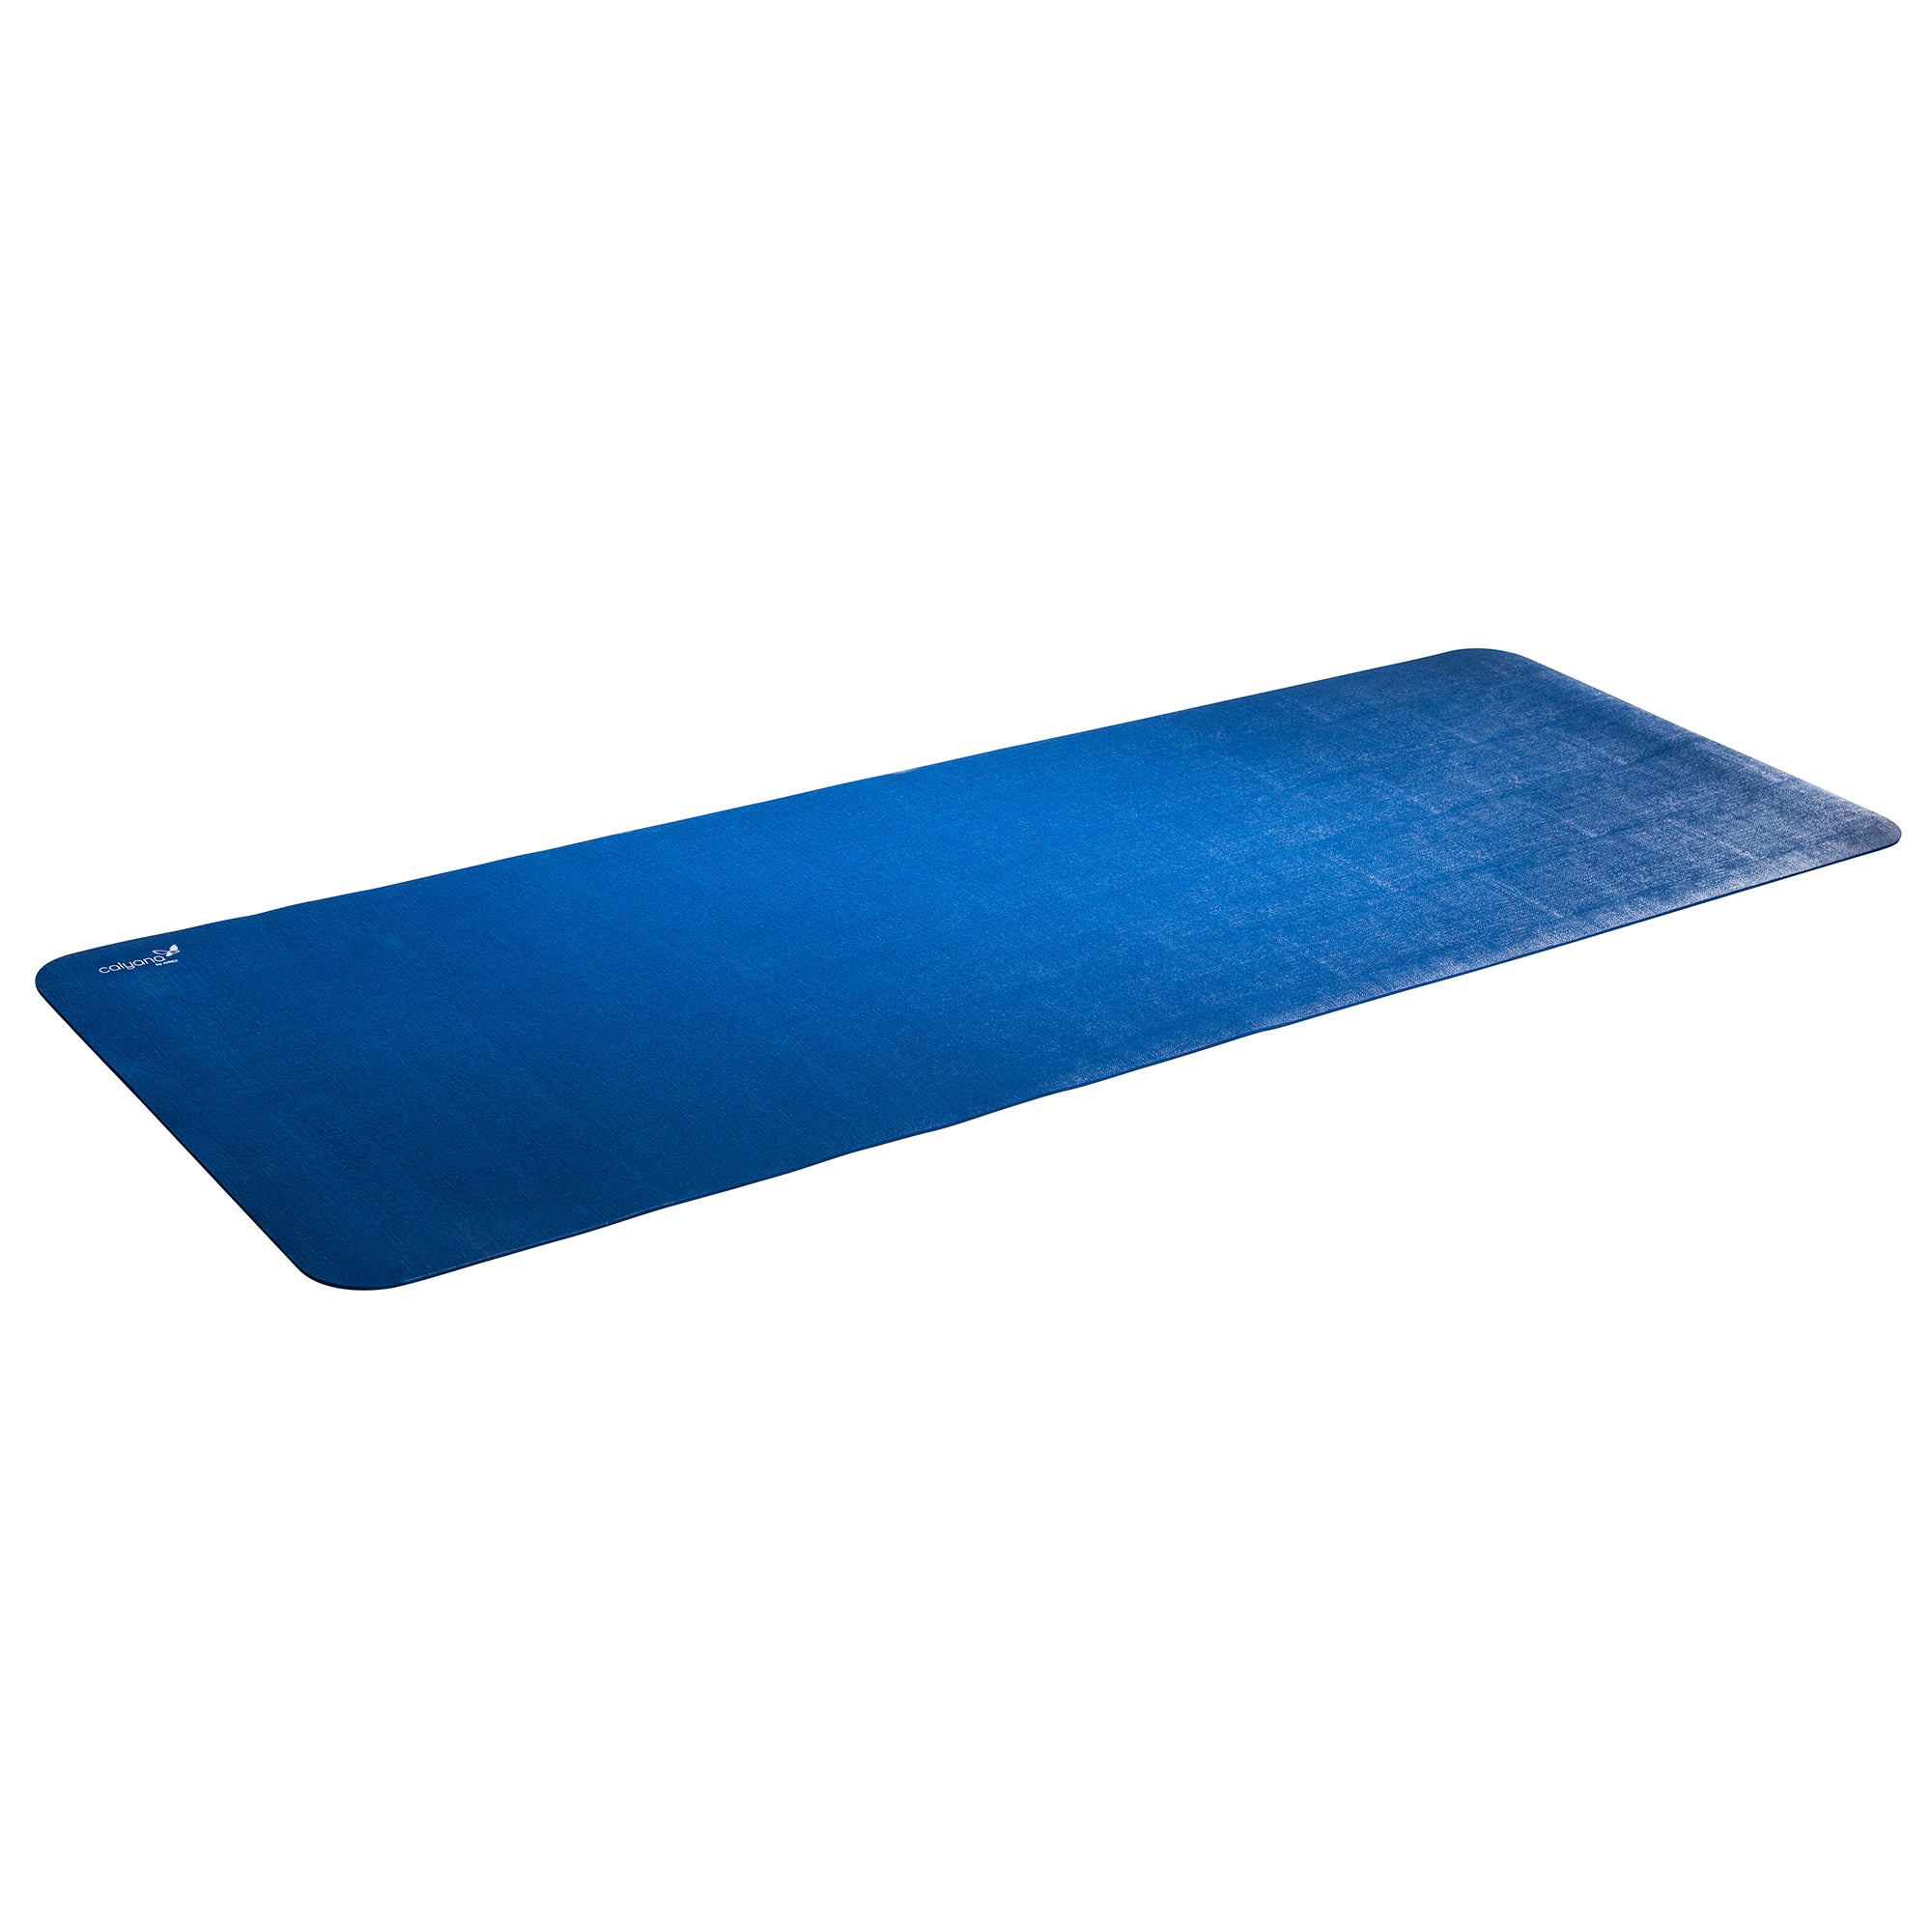 "The Airex® Calyana Prime Yoga Mat is the ideal everyday mat with its thick comfortable cushioning and permanent optimum grip that will keep you stable, no matter the pose. This mat is lightweight yet durable and has a longer and wider size than most standard mats, making it ideal for yoga, fitness, Pilates, and stretching. A thick, lightweight, and comfortable mat Permanent optimum grip to keep you stable Durable and extra long and wide Ideal use for yoga or fitness Measurements: 72.83""L x 25.98""W and 0.45cm thick. ?Care Tips: ?Wipe clean with a damp cloth and warm water before and after use. Do not leave objects laying on the mat for a long period of time to avoid pressure marks. Roll up the mat or store it flat to keep it in the best shape."